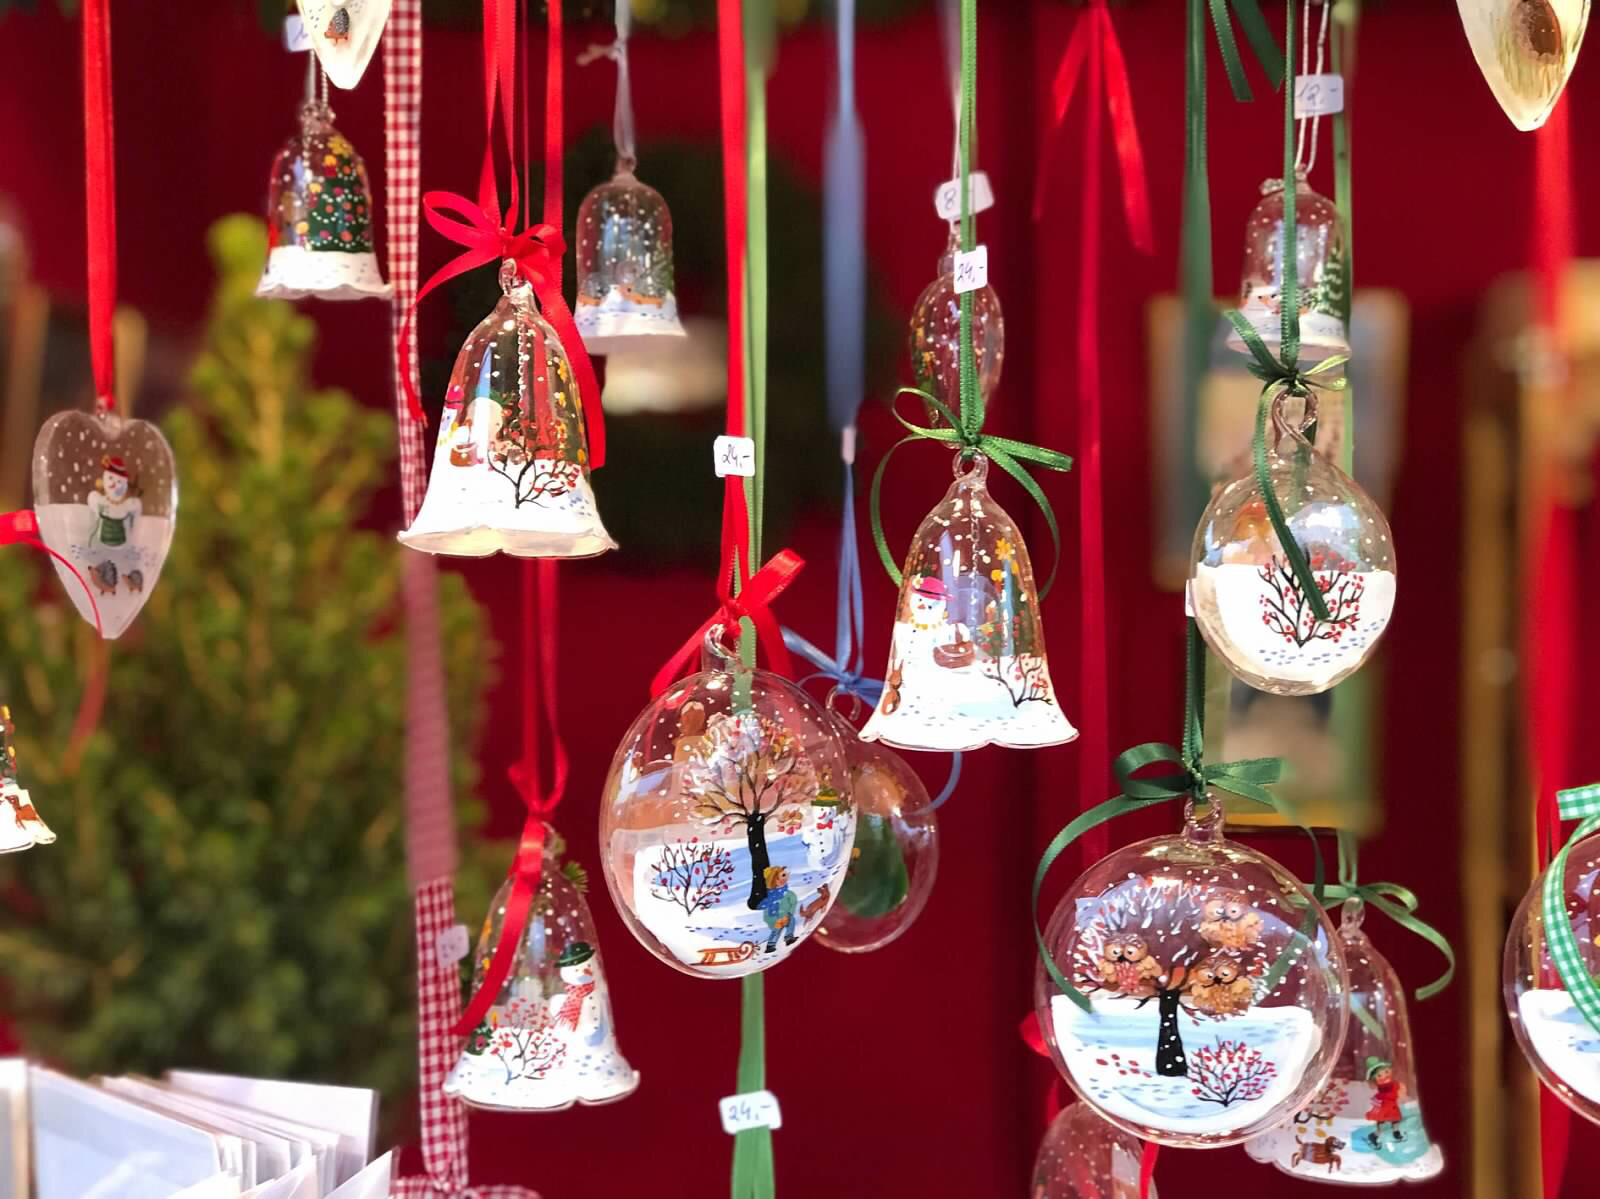 Hand-painted ornaments, Christmas market, Vienna